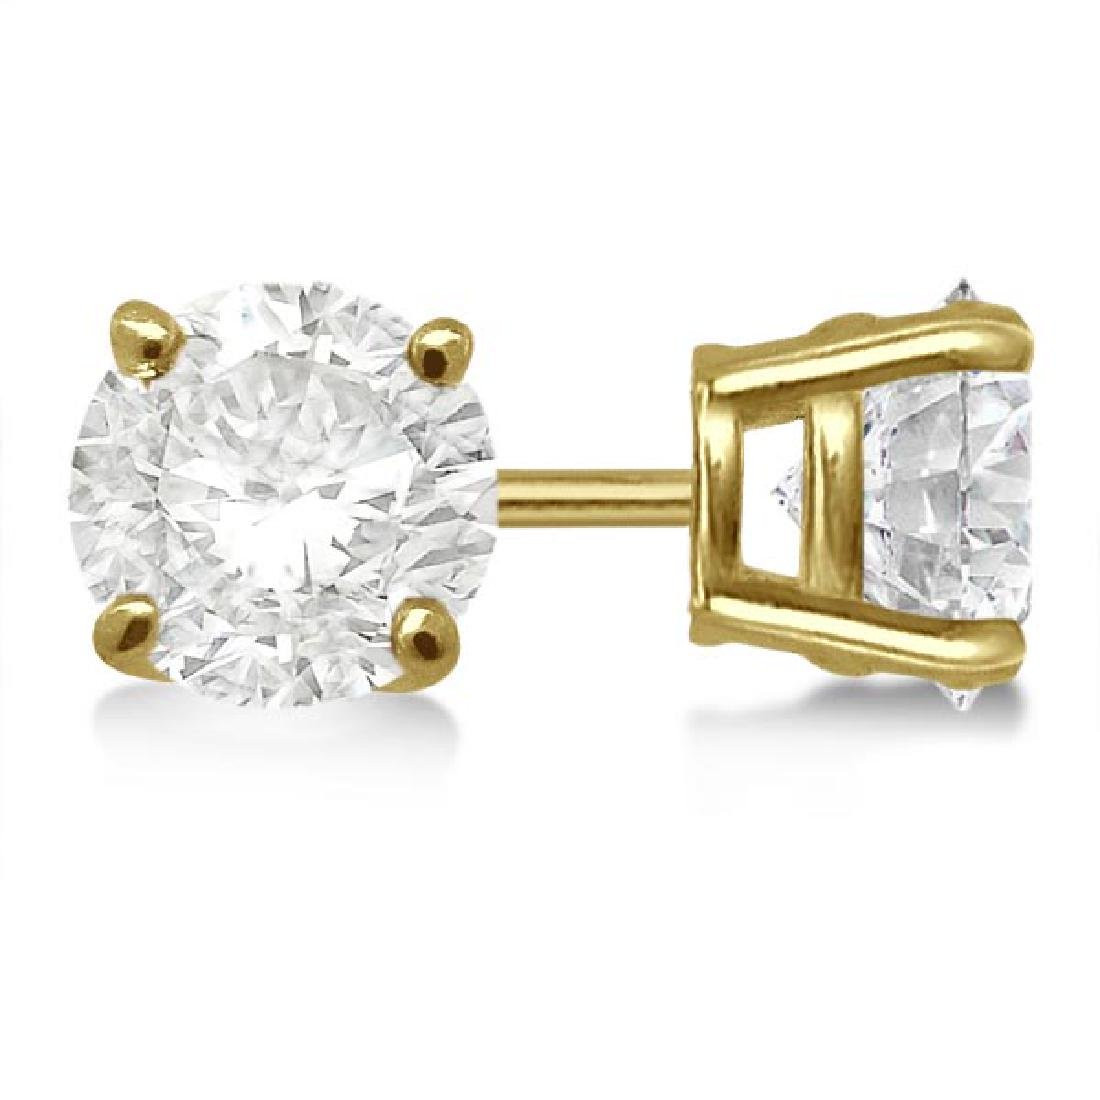 CERTIFIED 1 CTW ROUND E/SI1 DIAMOND SOLITAIRE EARRINGS